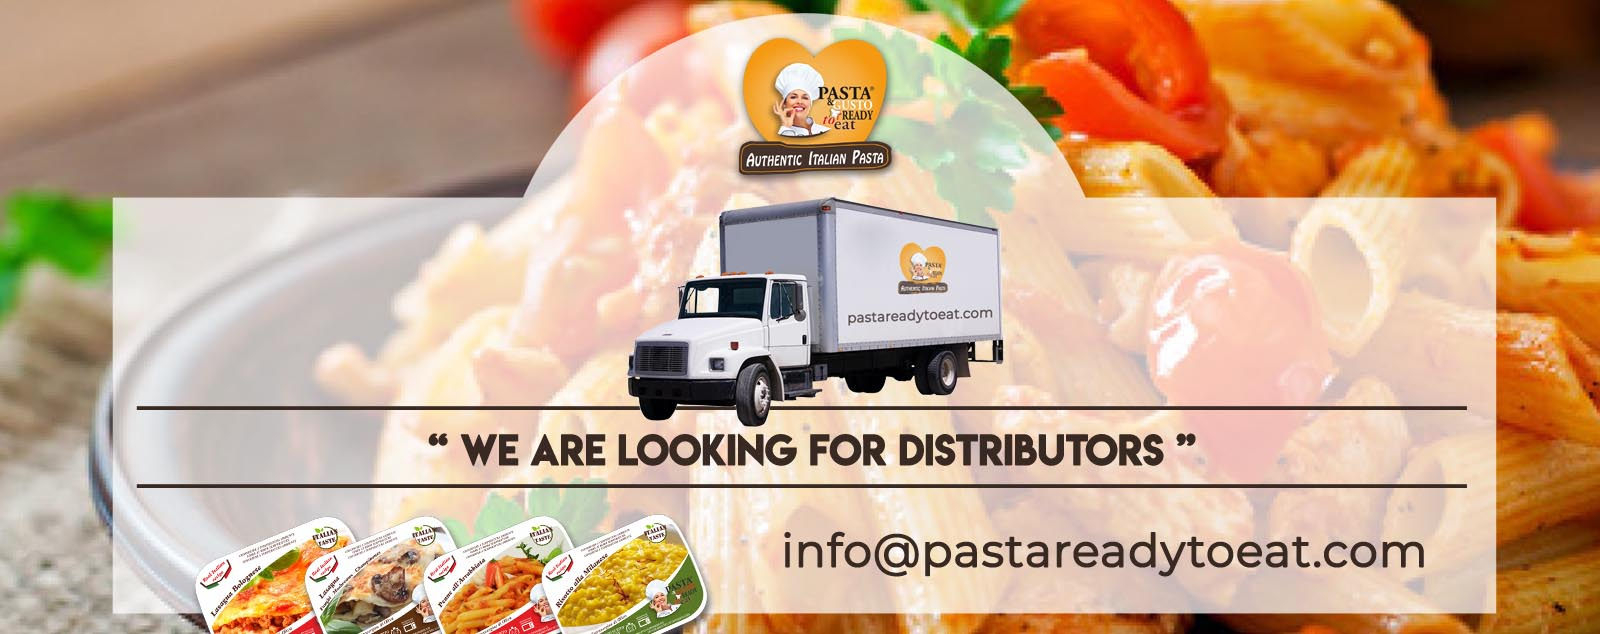 We're looking for distributors of room temperature Pasta Ready to Eat meals room temperature, sale of innovative products: quality guaranteed, support for sales and marketing. Increase your business, becoming an integral part of our structure.